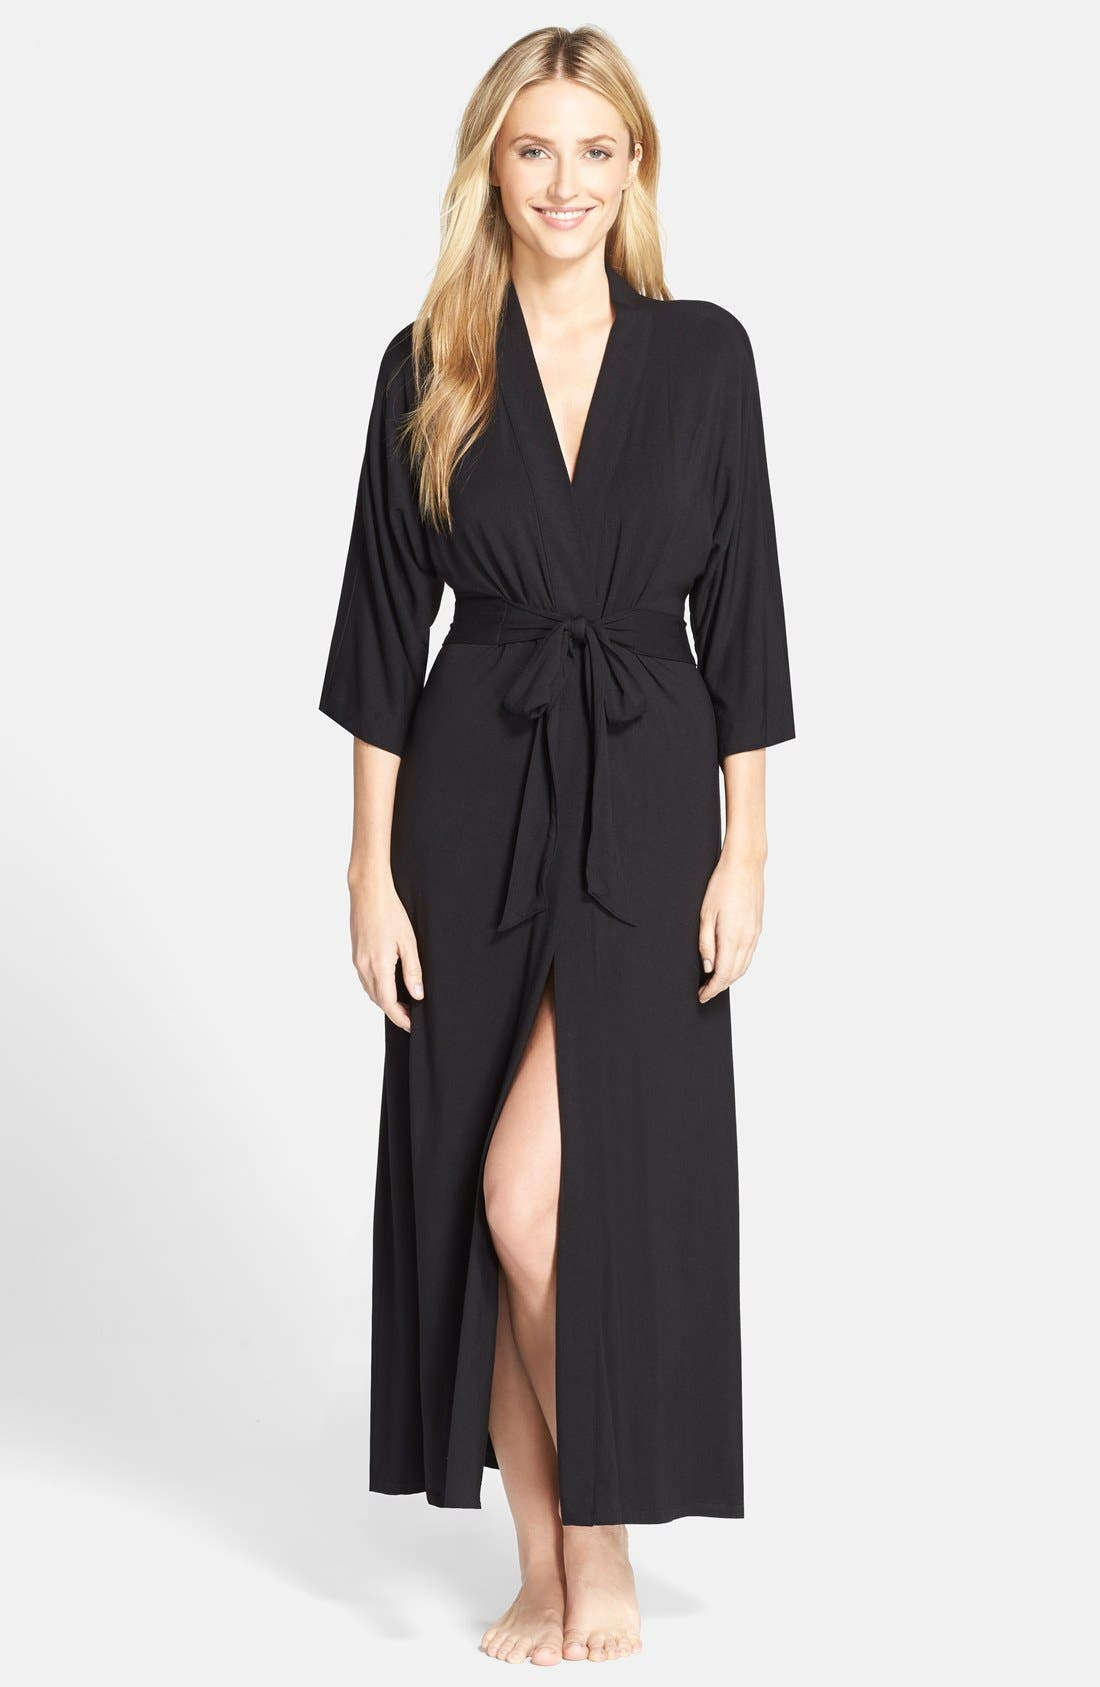 DKNY 'Urban Essentials' Long Robe